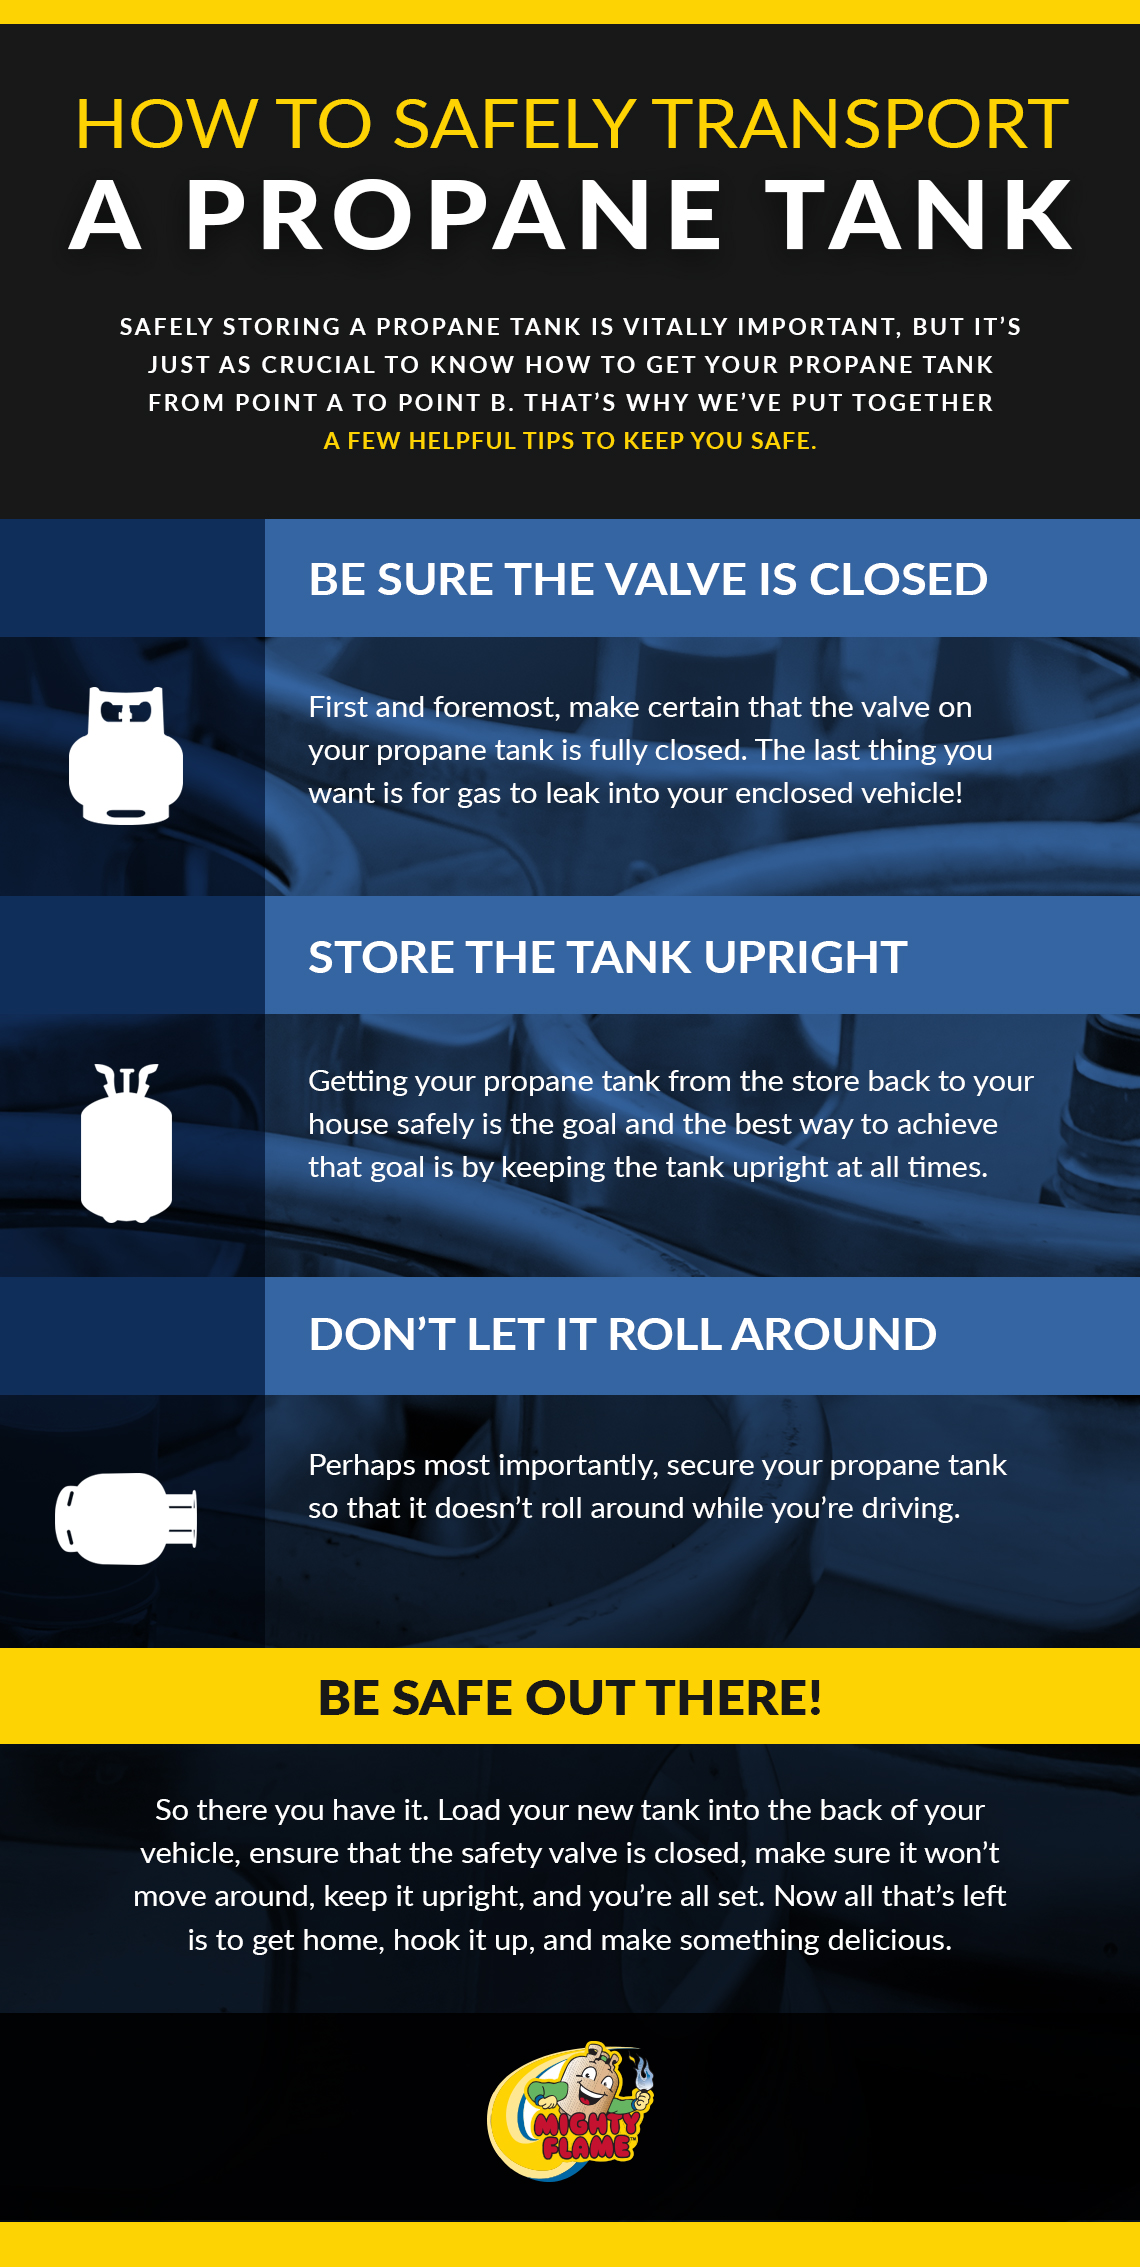 How To Safely Transport A Propane Tank